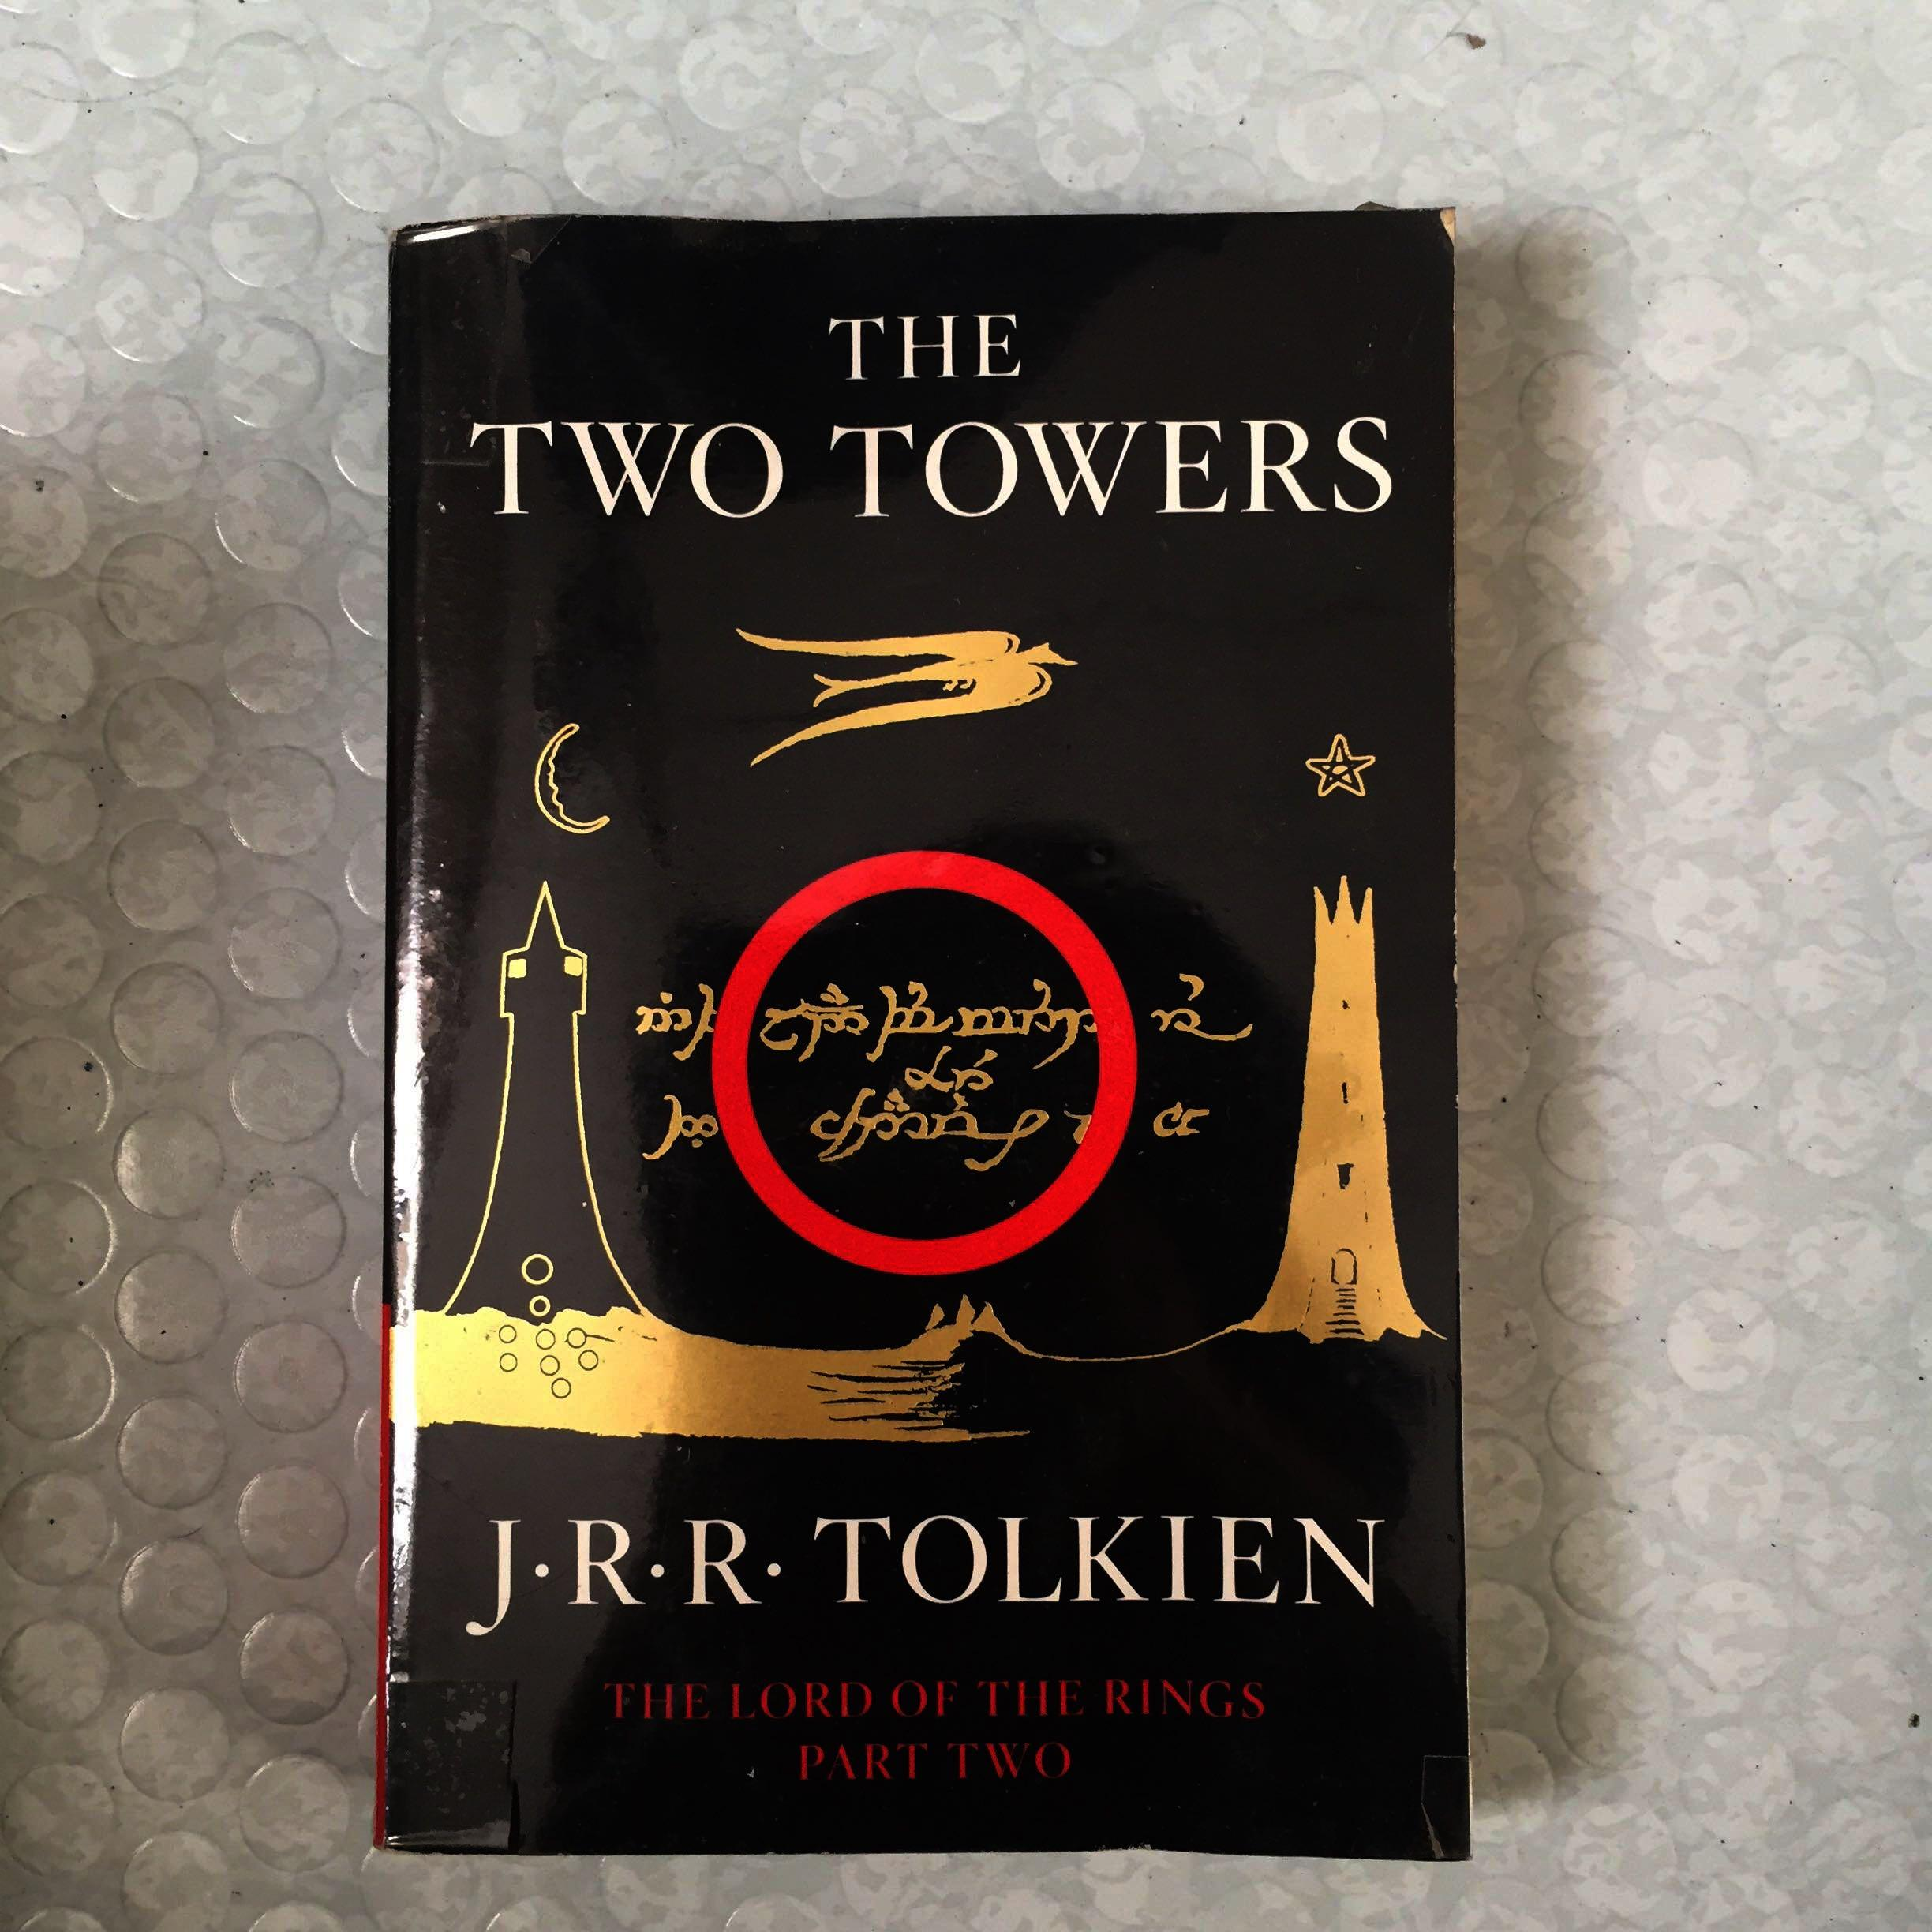 The Two Towers (Lord of the Rings Part Two) by J.R.R. Tolkien